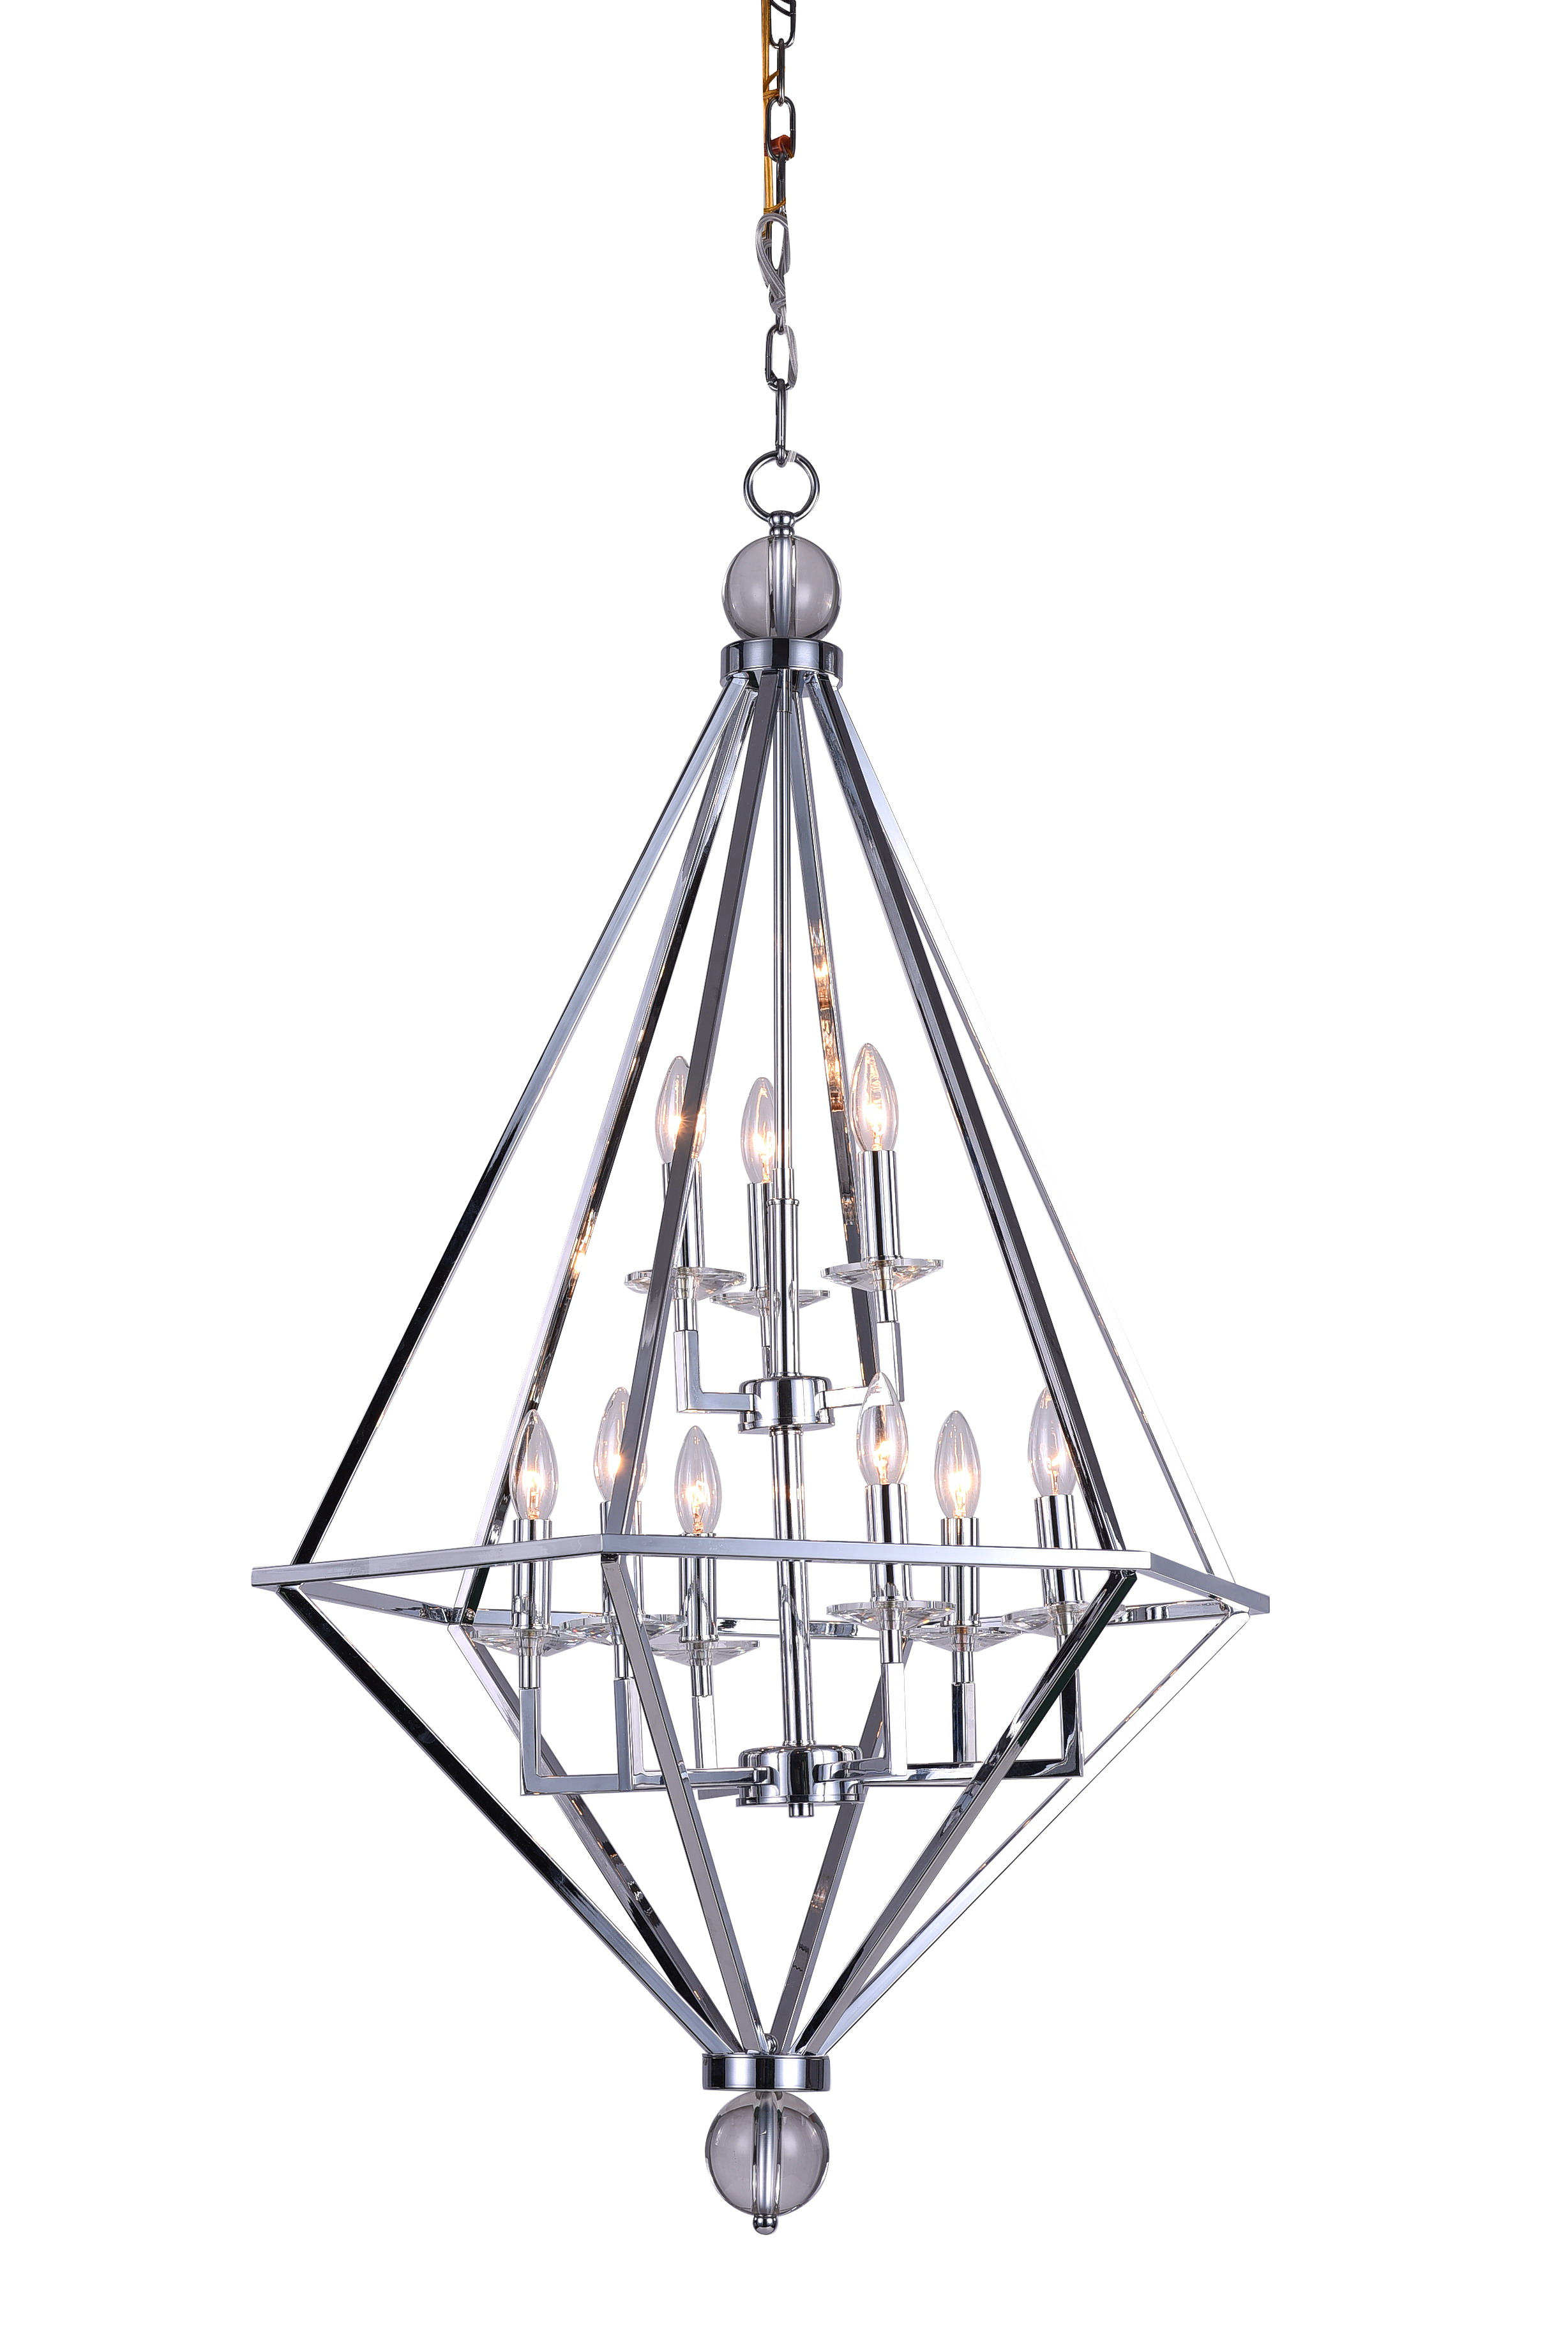 Popular Kenedy 9 Light Candle Style Chandeliers Pertaining To Cwi Lighting (View 17 of 25)